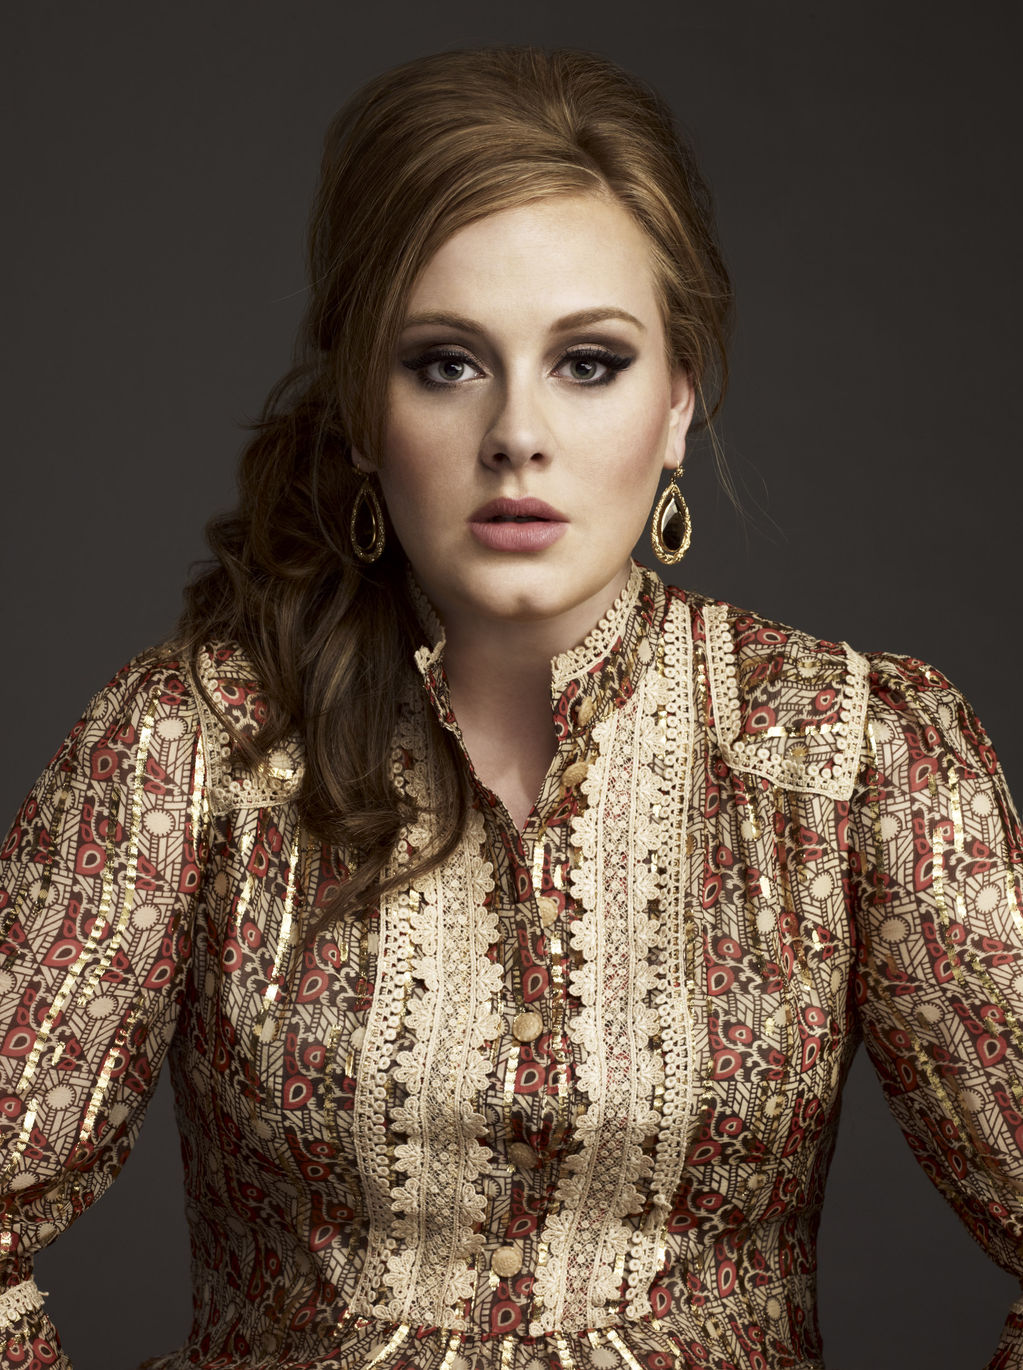 Interesting Facts About Adele | People Magazine